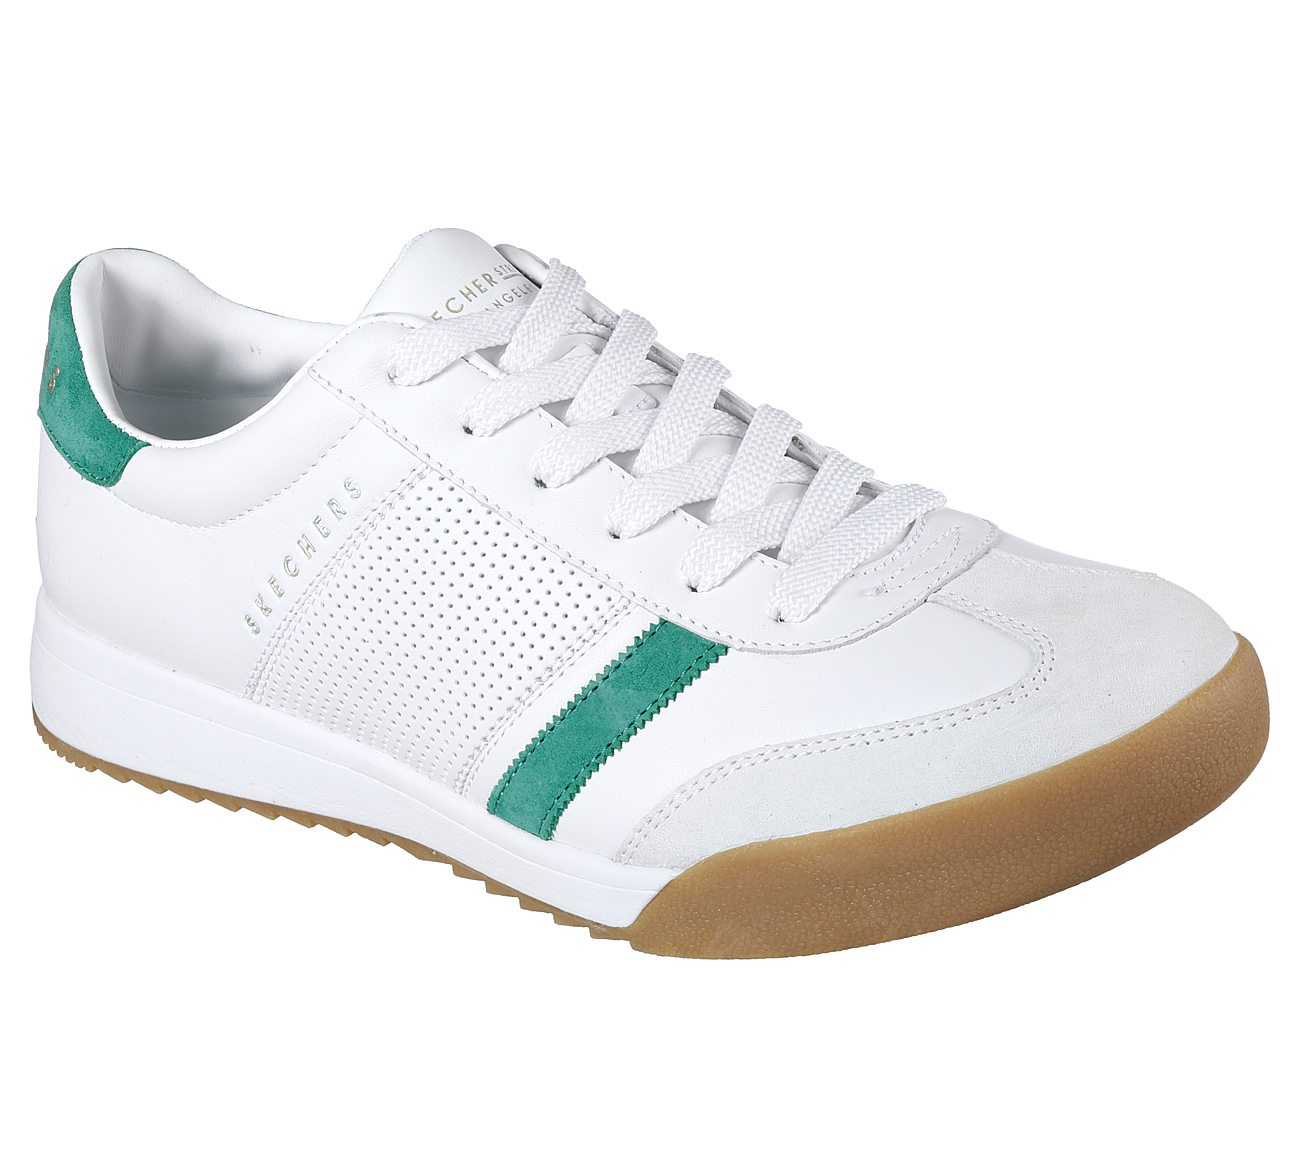 Buy SKECHERS Zinger Lace-Up Sneakers Shoes